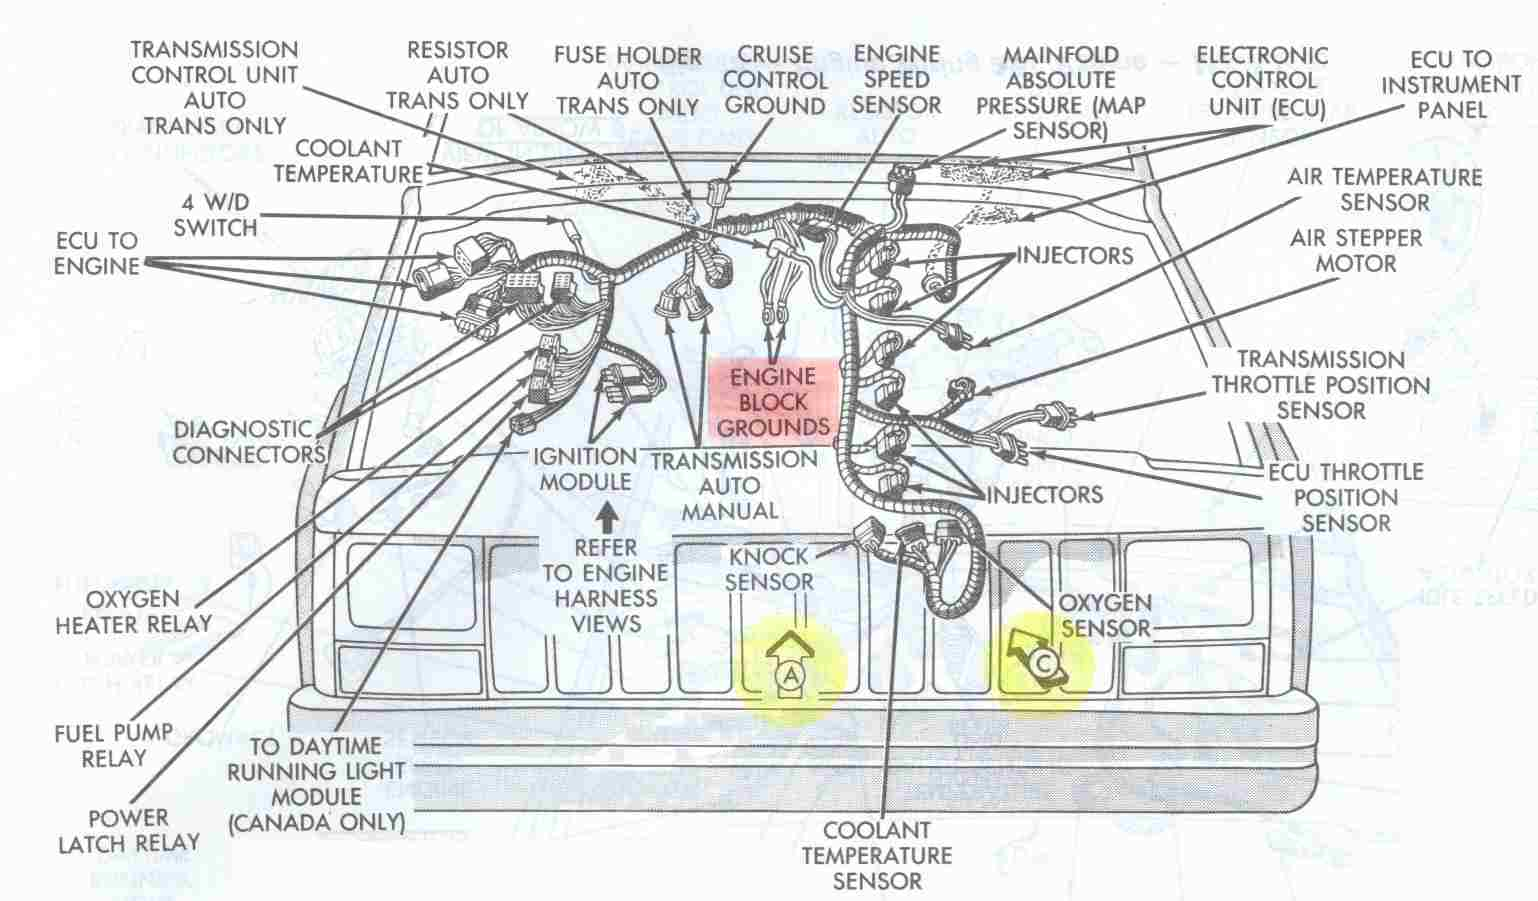 Electrical_Engine_Ground_Points_Overview jeep cherokee electrical diagnosing erratic behavior of engine jeep xj wiring harness at crackthecode.co